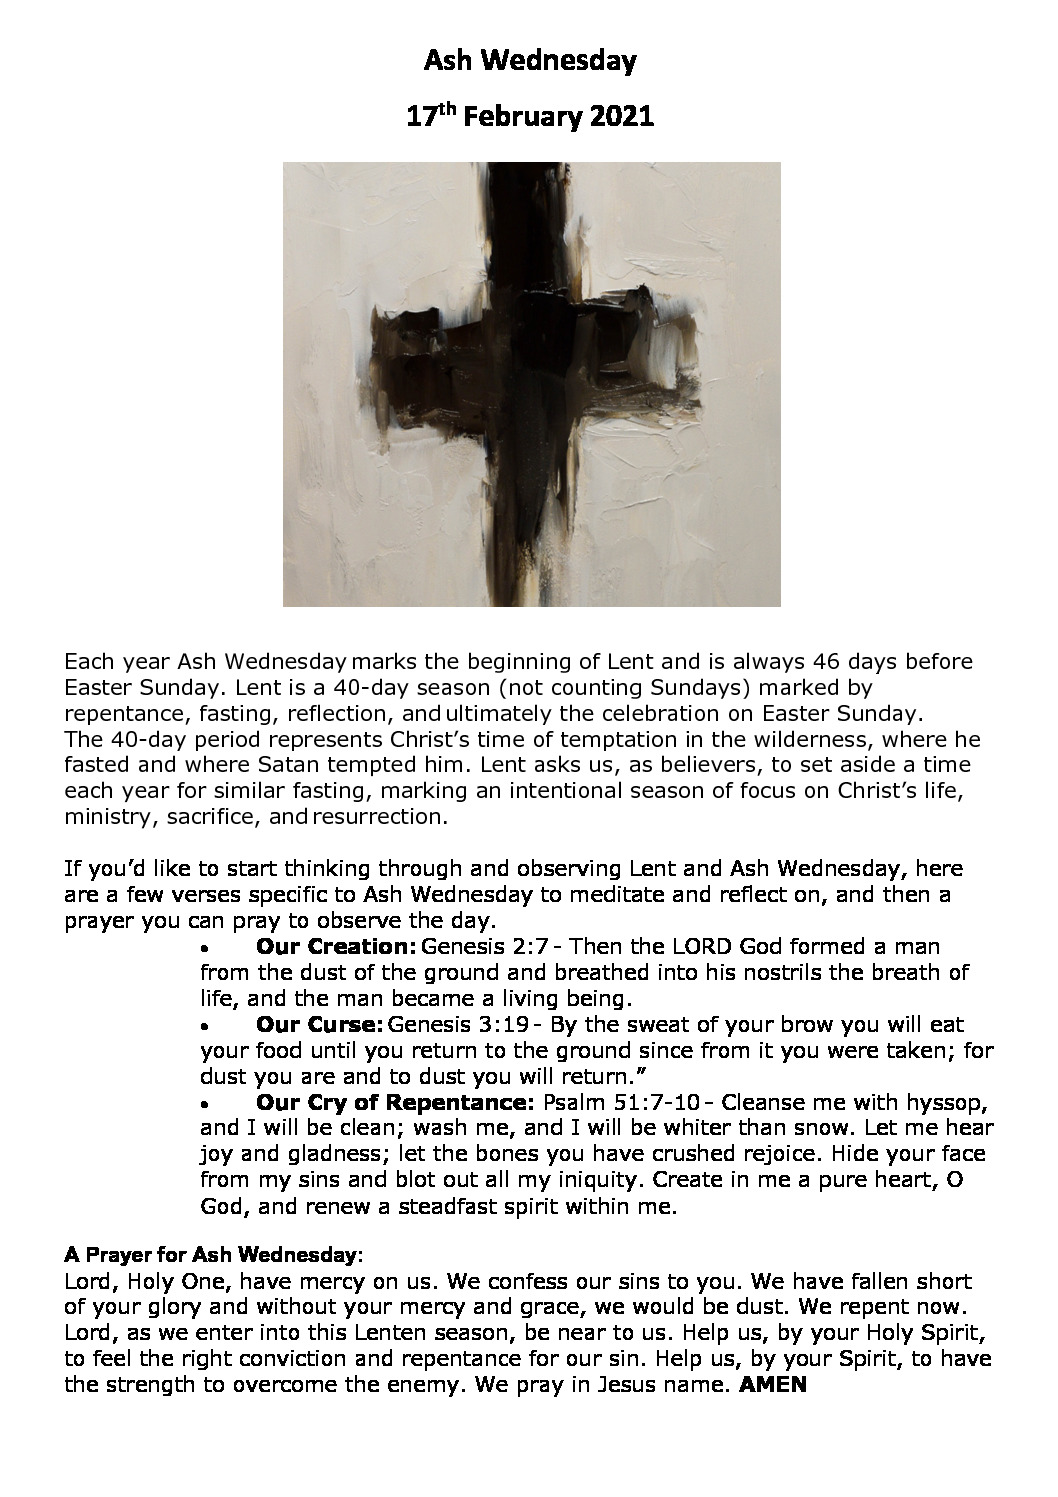 thumbnail of Ash Wednesday prayer guide 2021